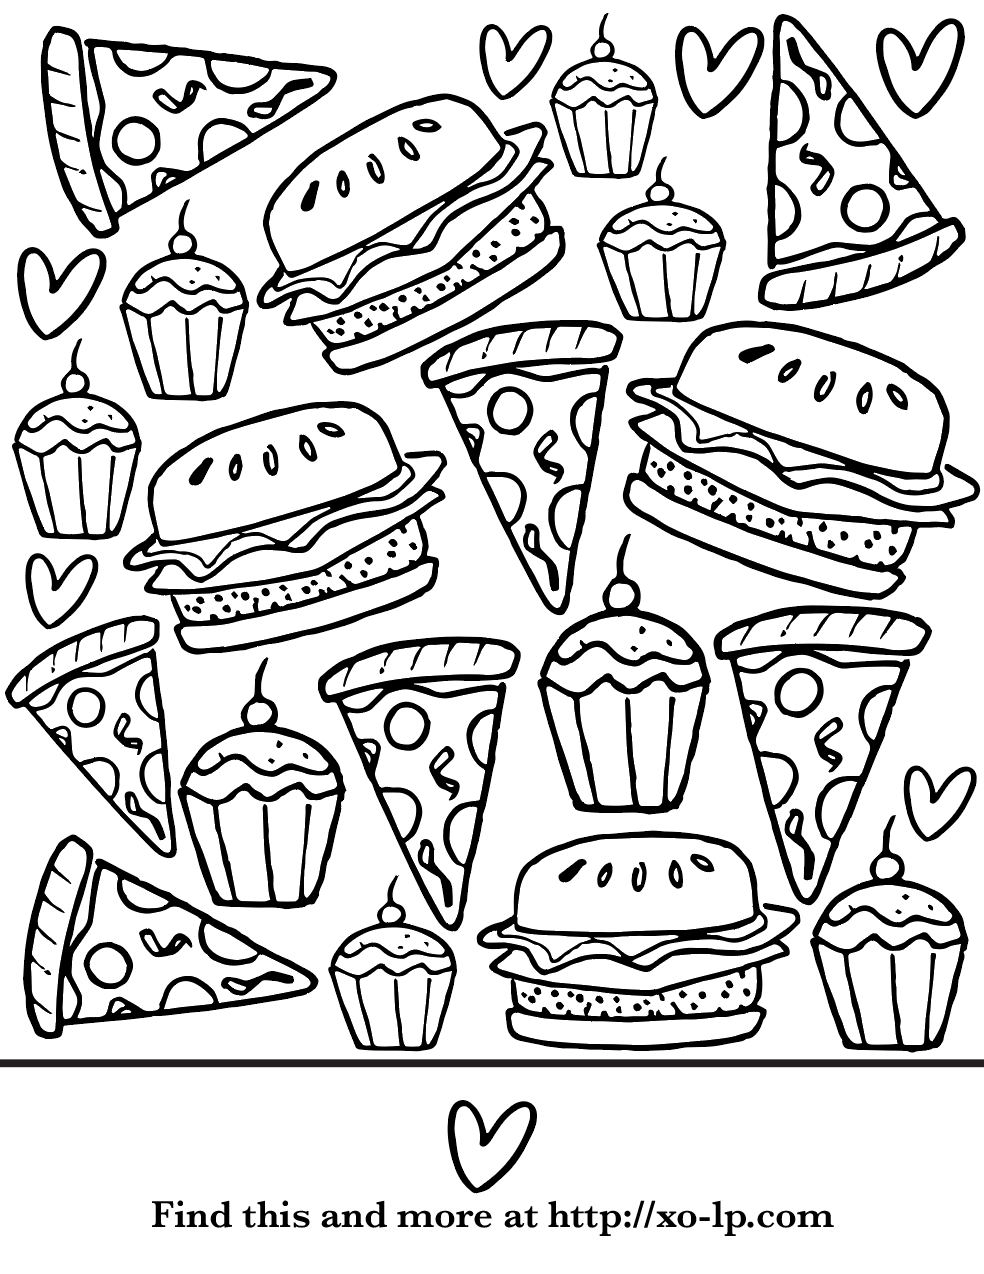 Party Food Coloring Page Food Coloring Pages Summer Coloring Pages Fall Coloring Pages